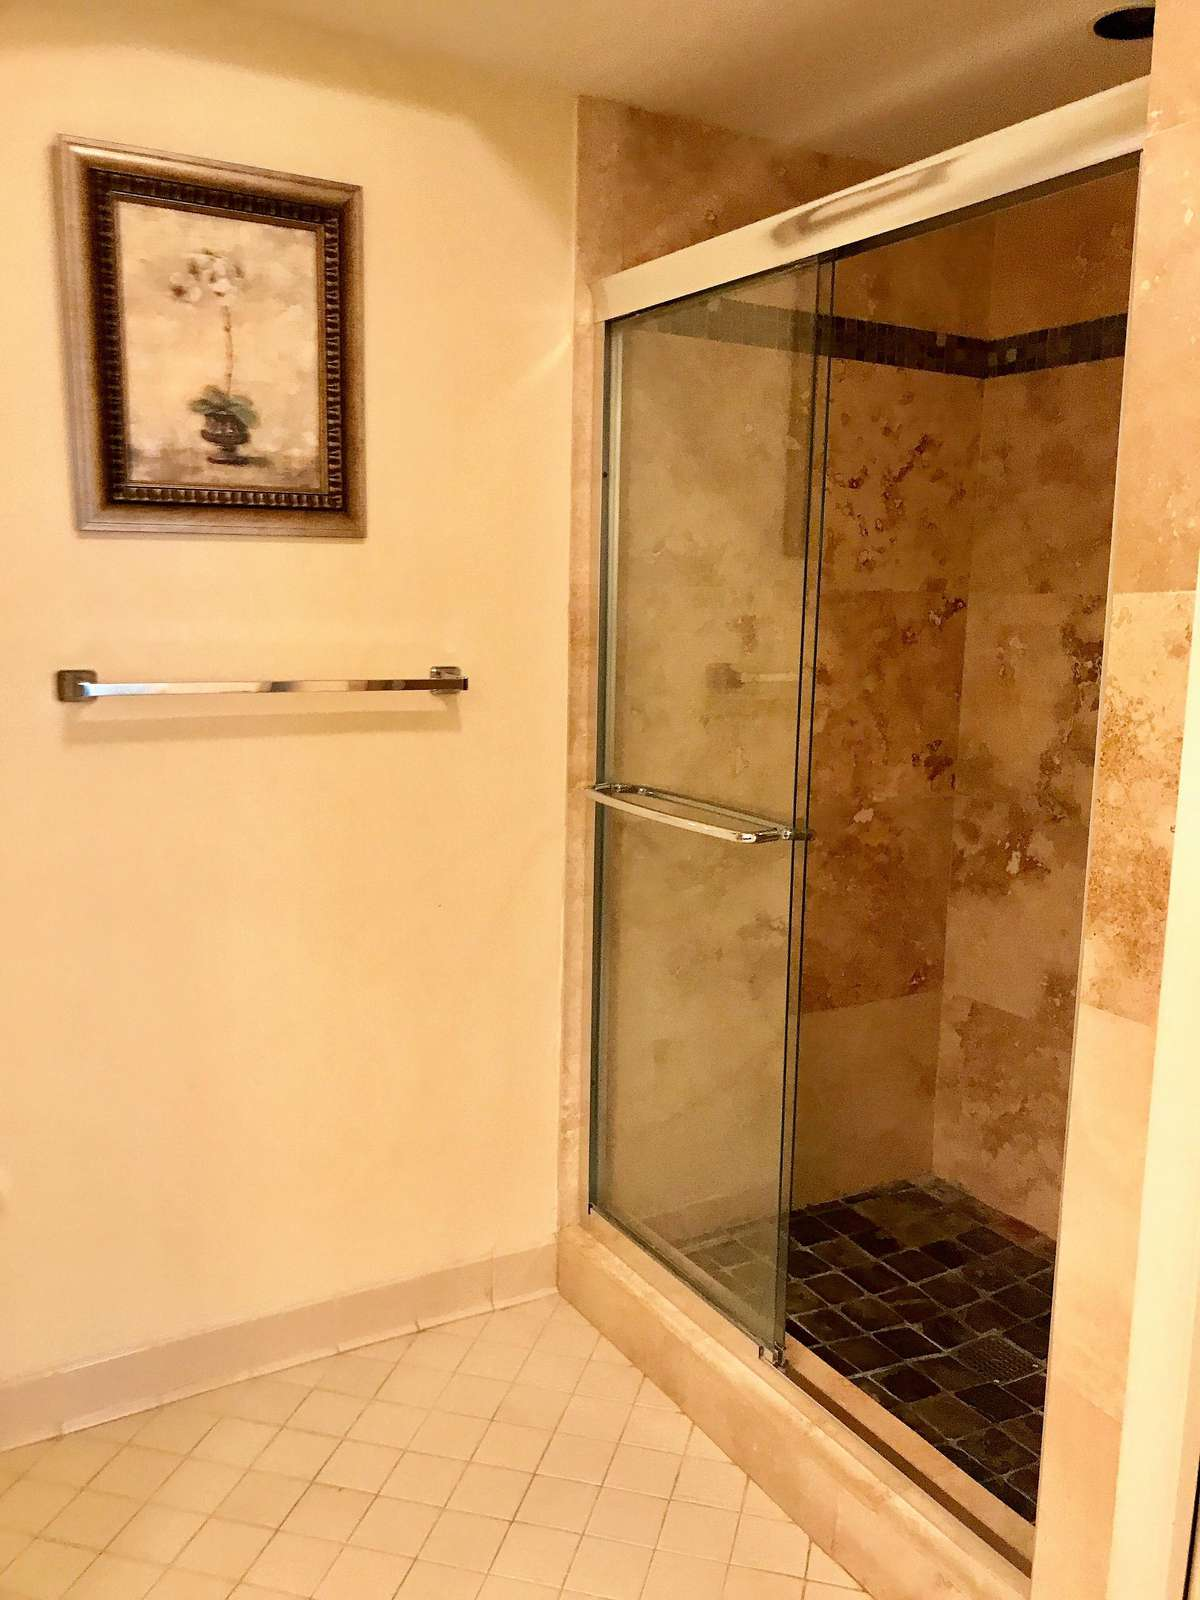 The master bath features a tiled shower.